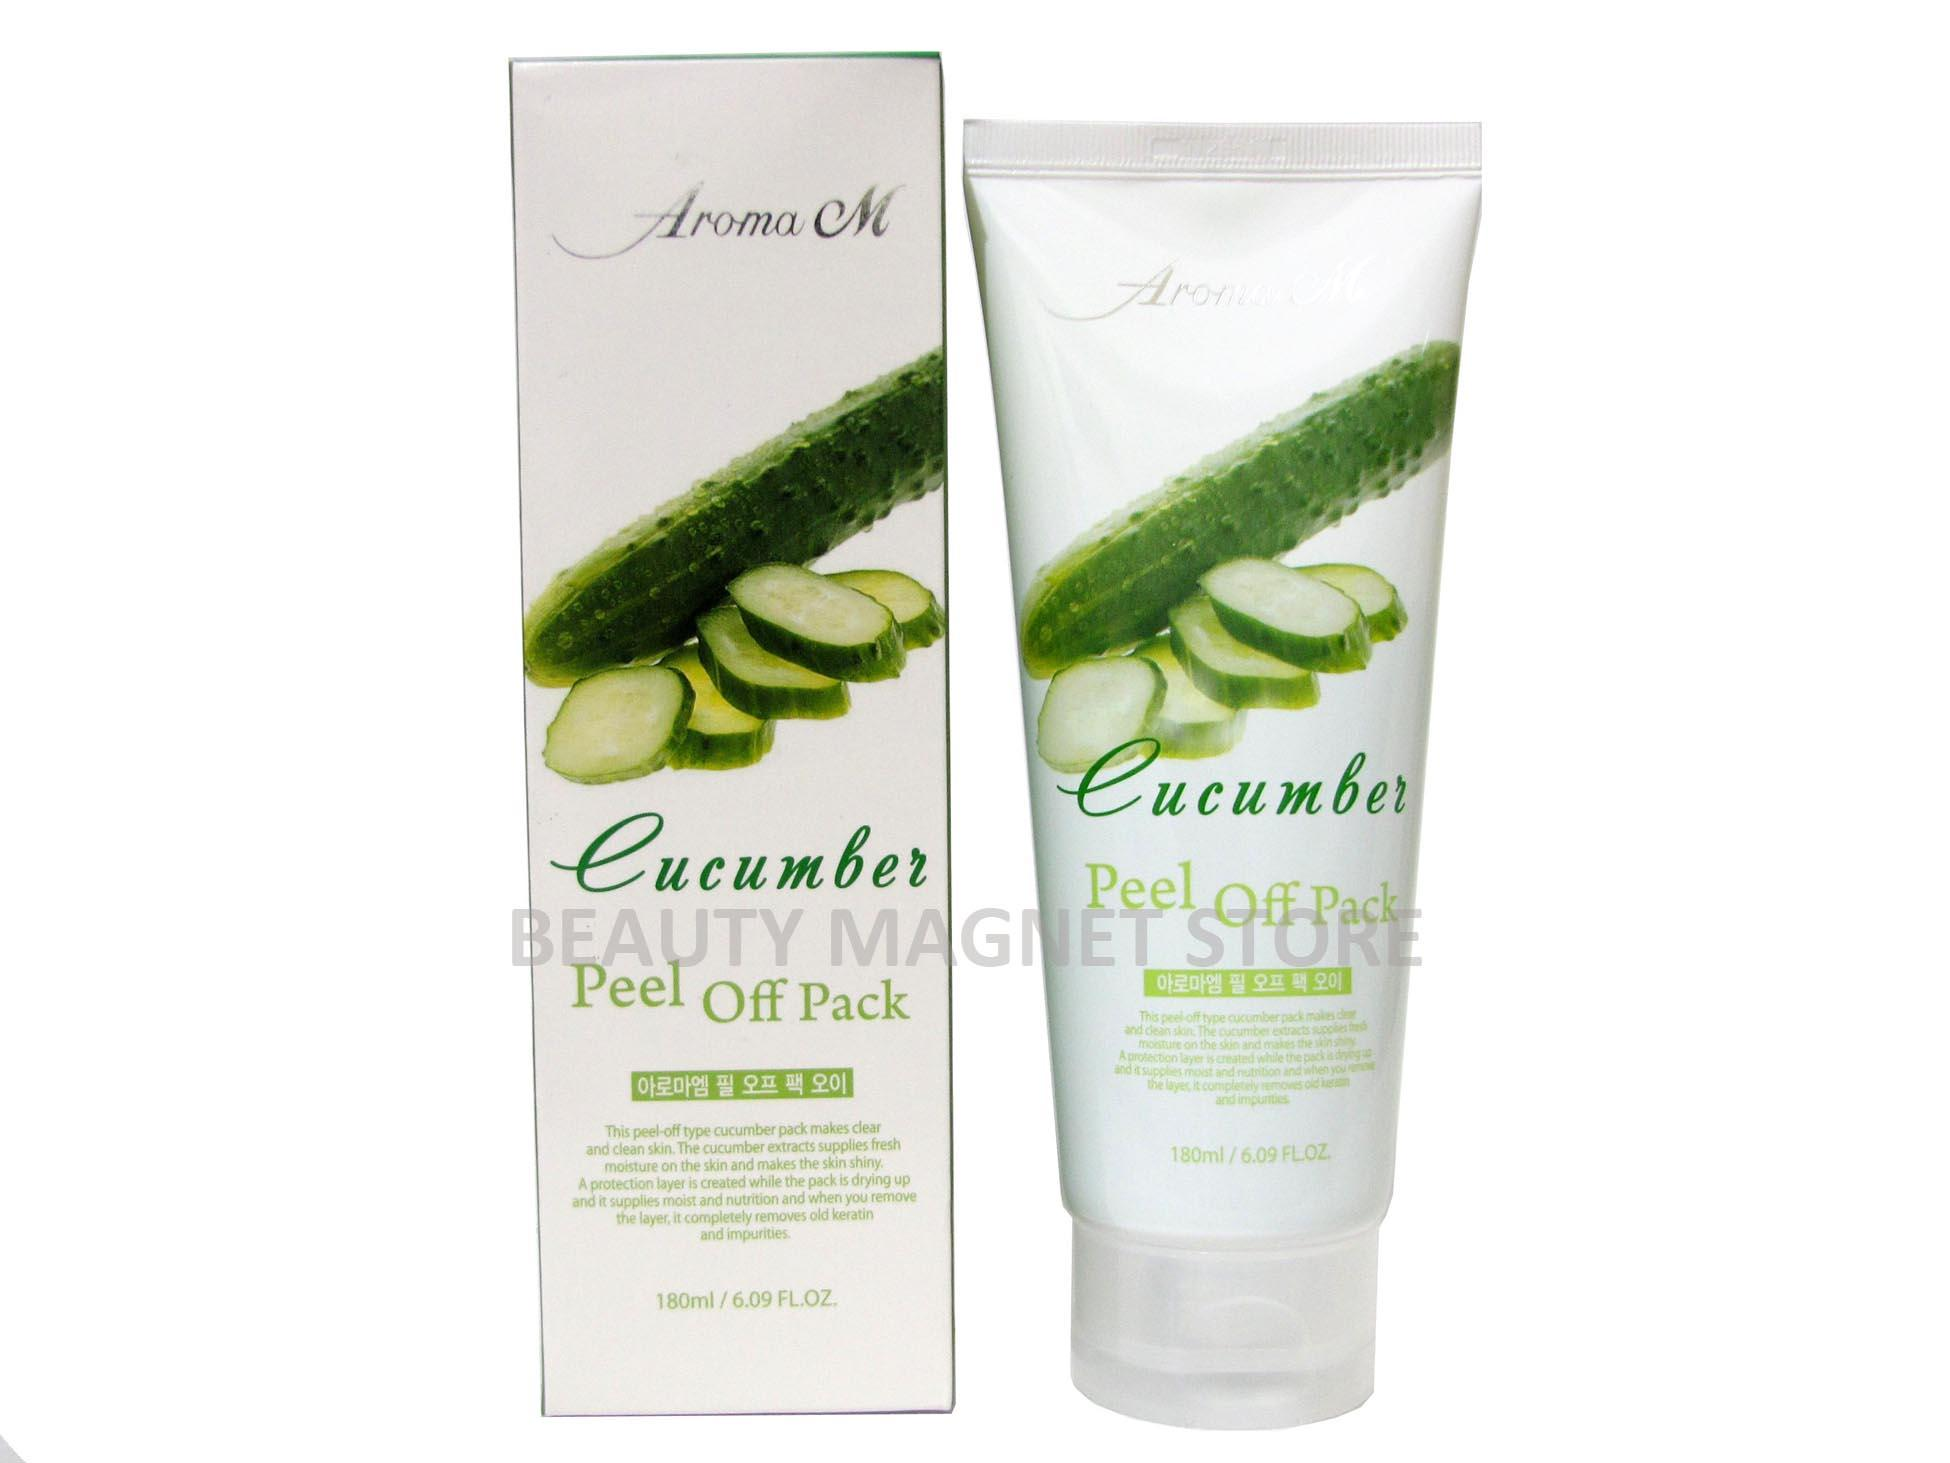 Aroma M Cucumber Peel Off Pack 180ml